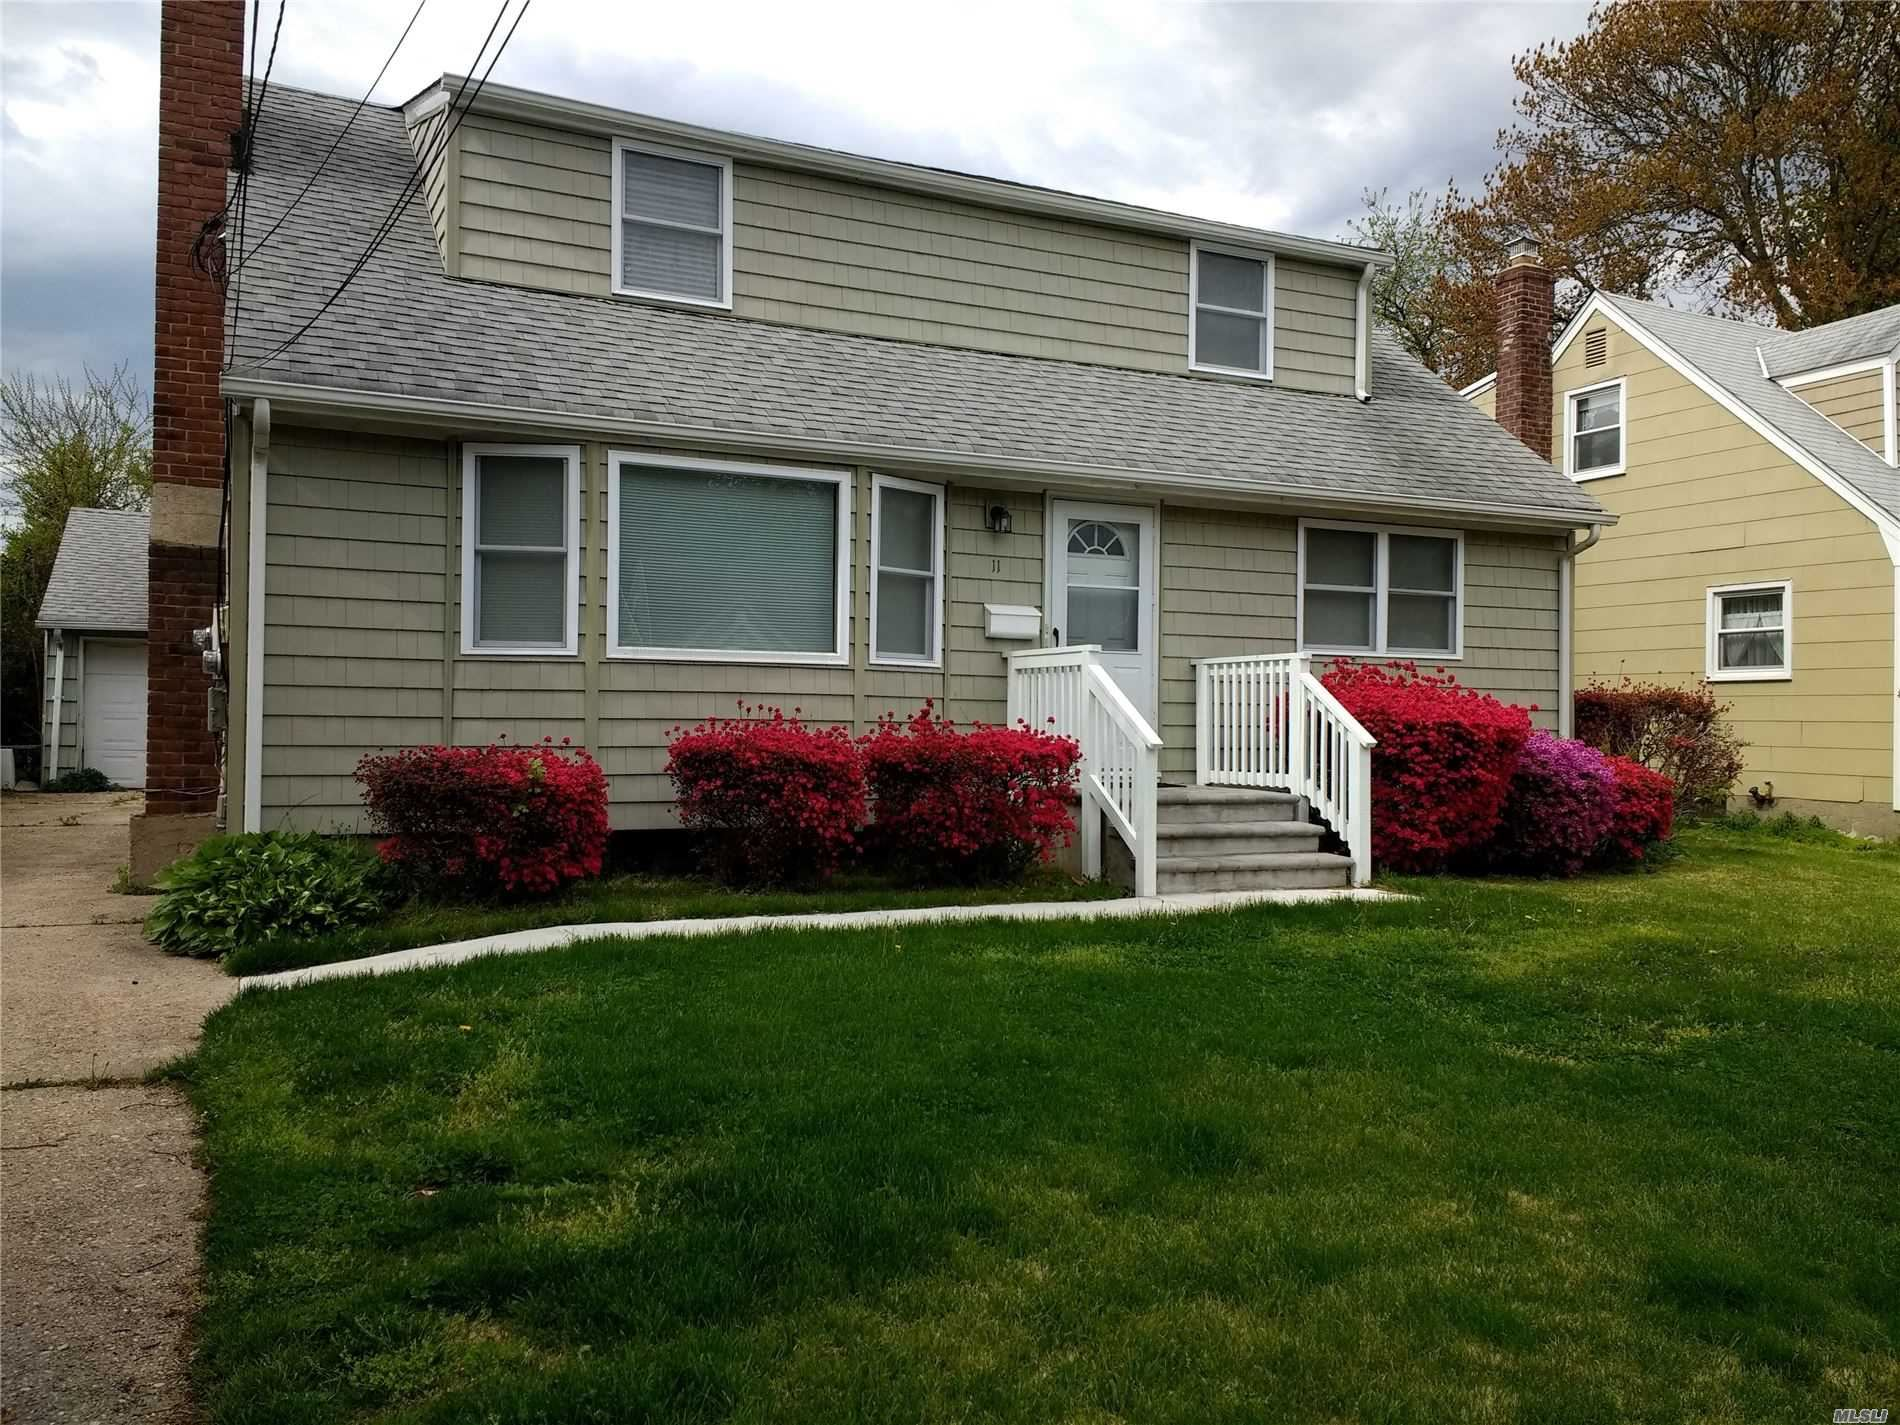 11 E 16th Street, Huntington Station, NY 11746 - MLS#: 3194072